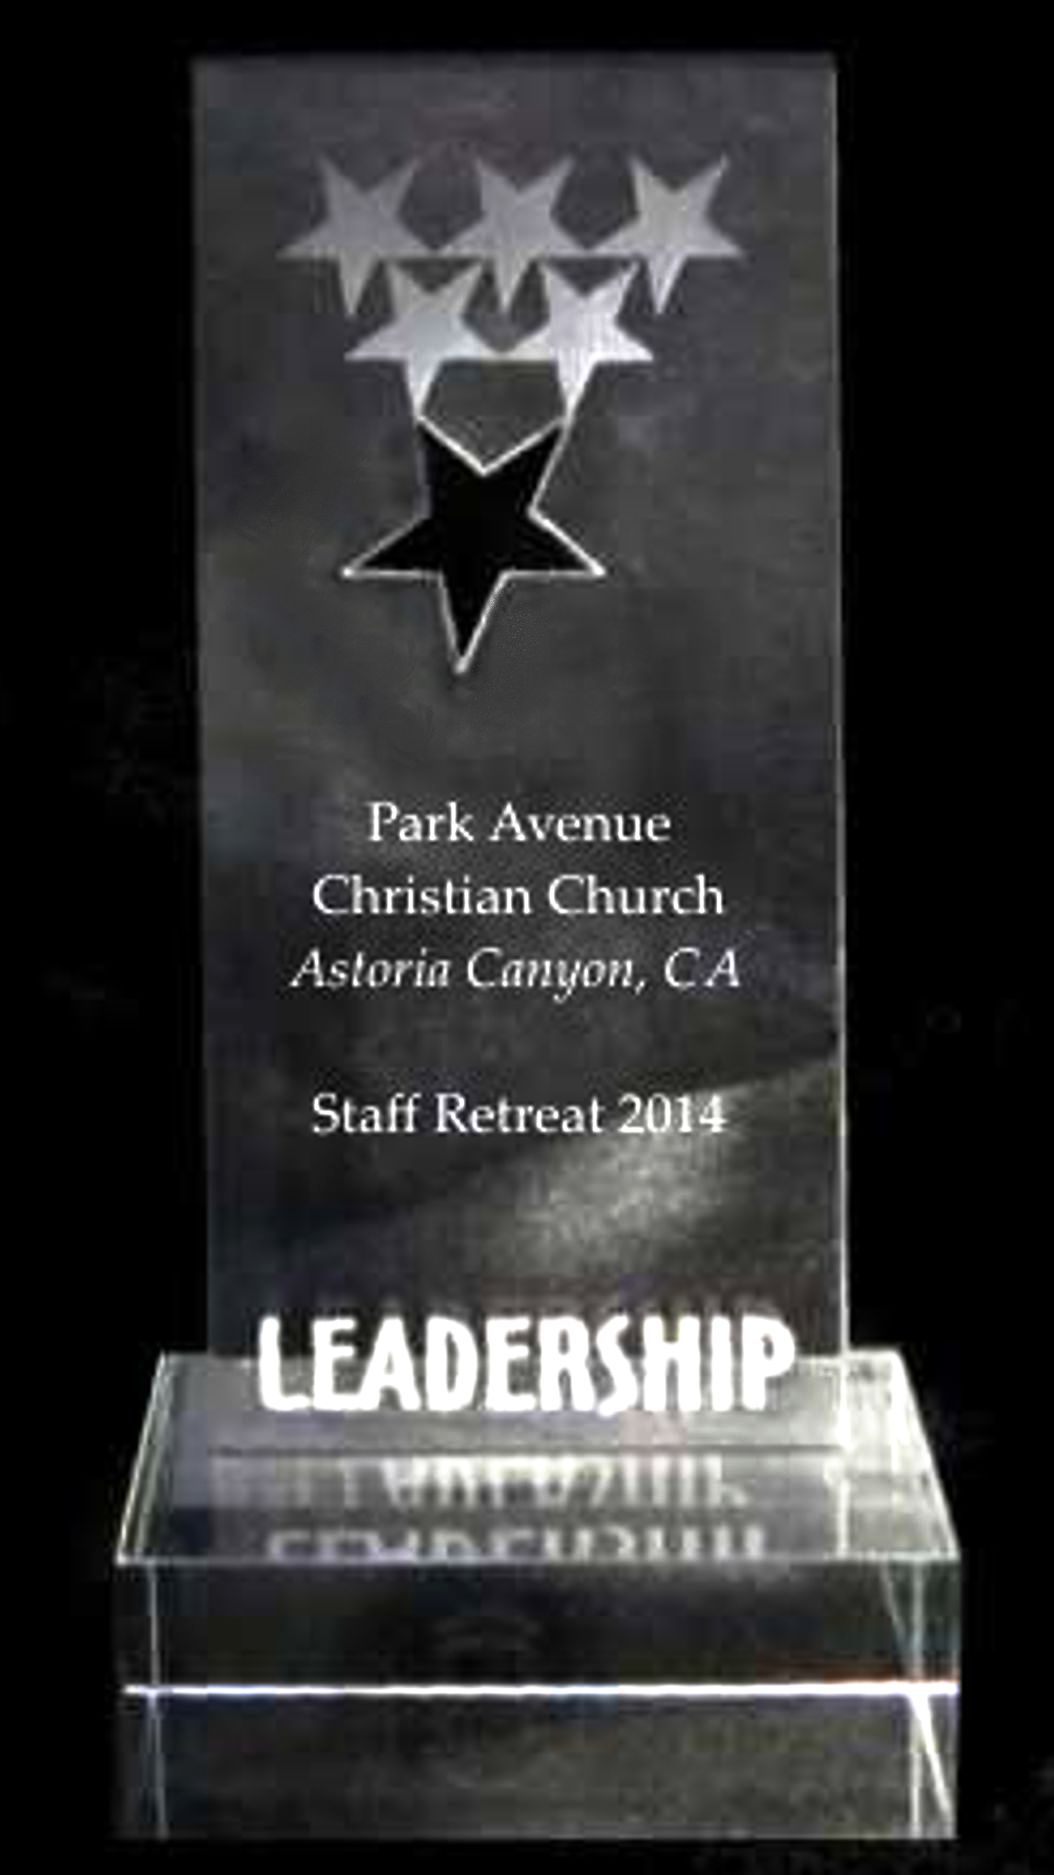 Acrylic Leadership Star Trophy Award